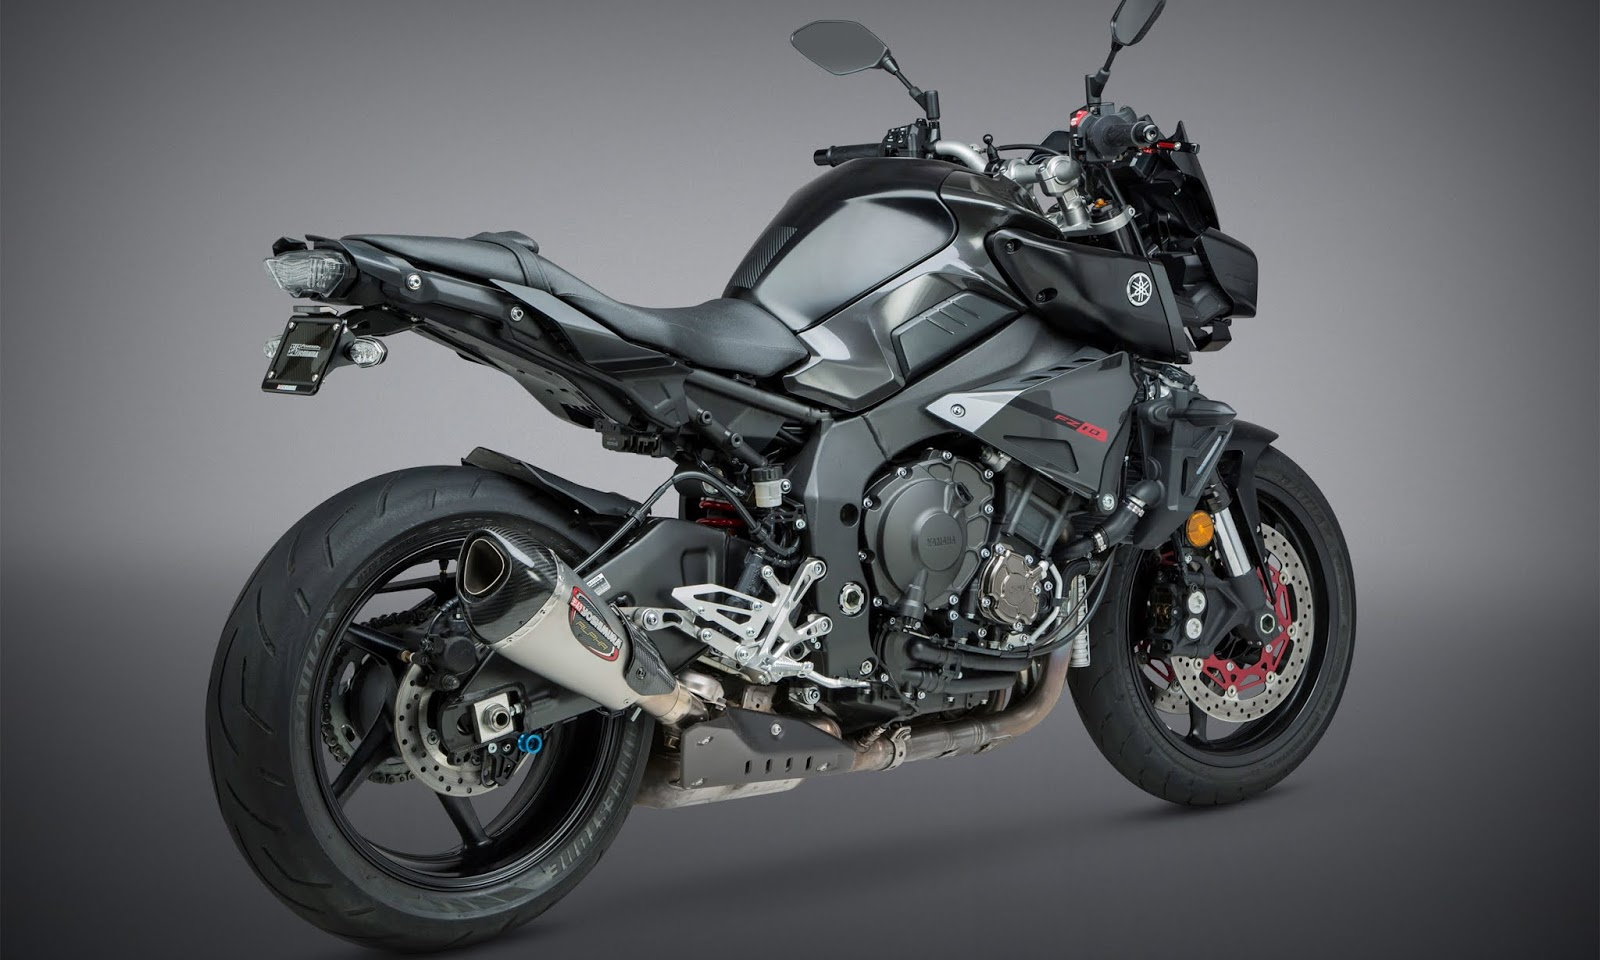 Yamaha FZ 10, HD Bikes, 4k Wallpapers, Images, Backgrounds